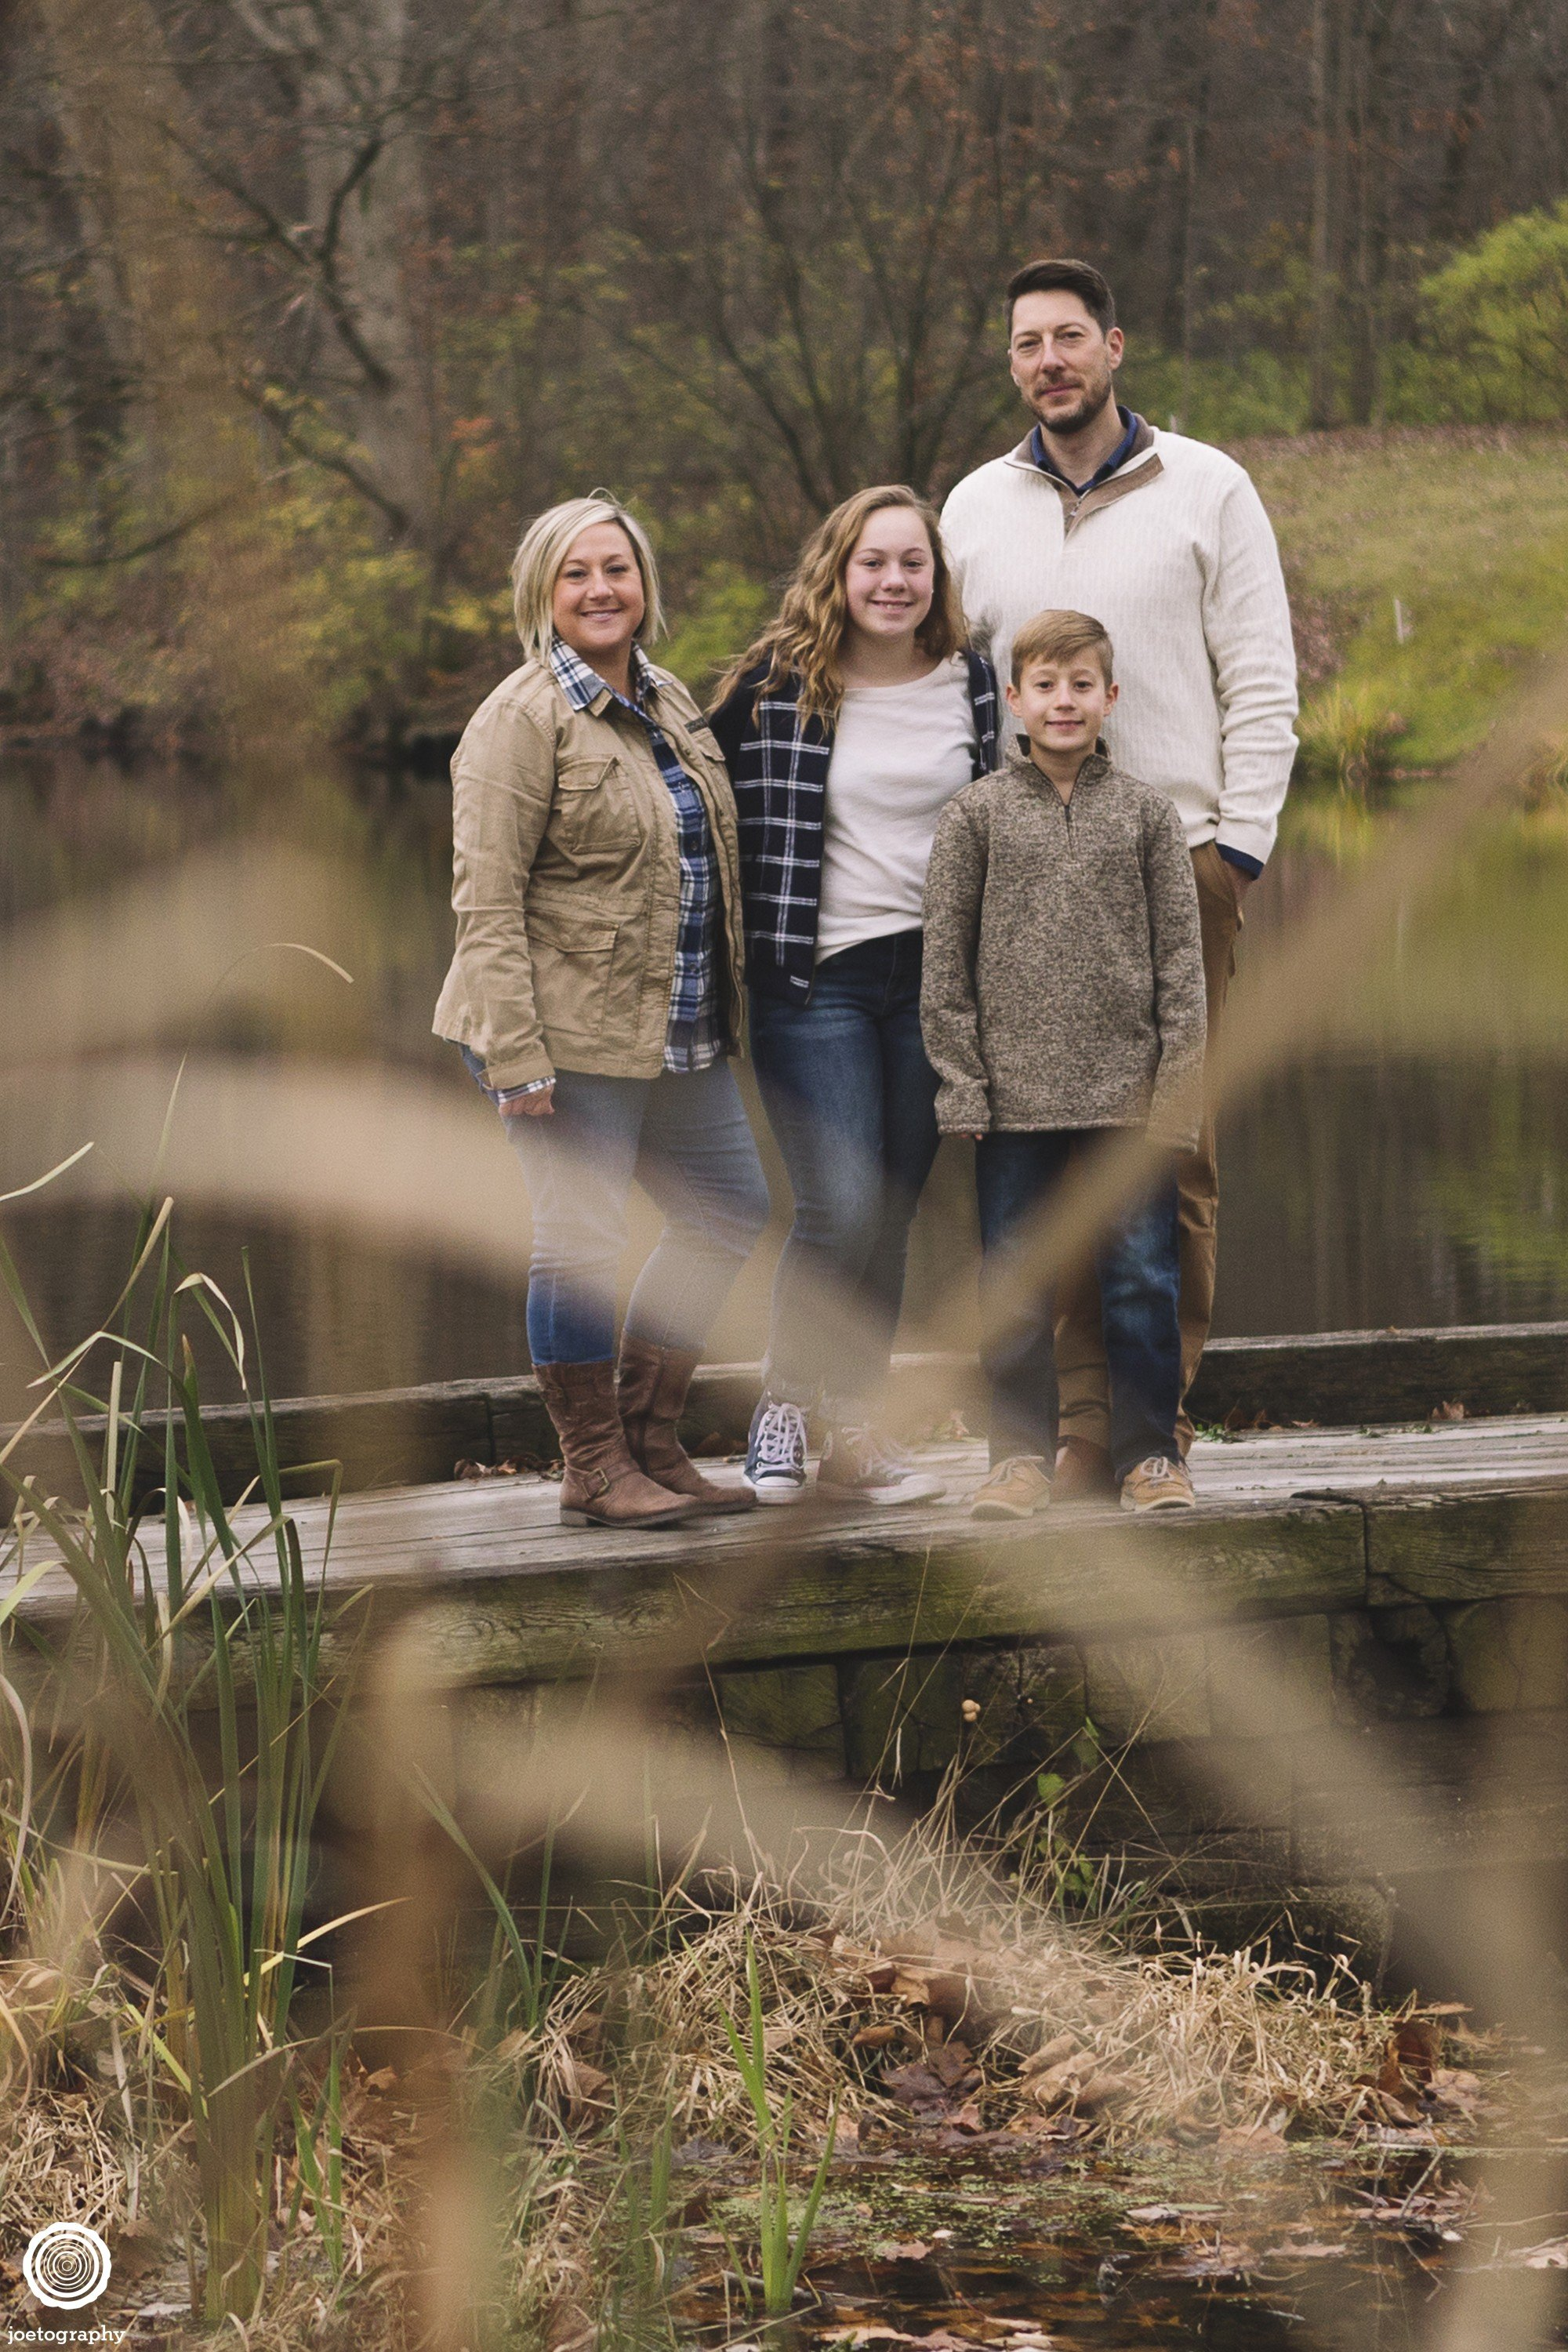 Teeple Family Photographs | Indianapolis - 8